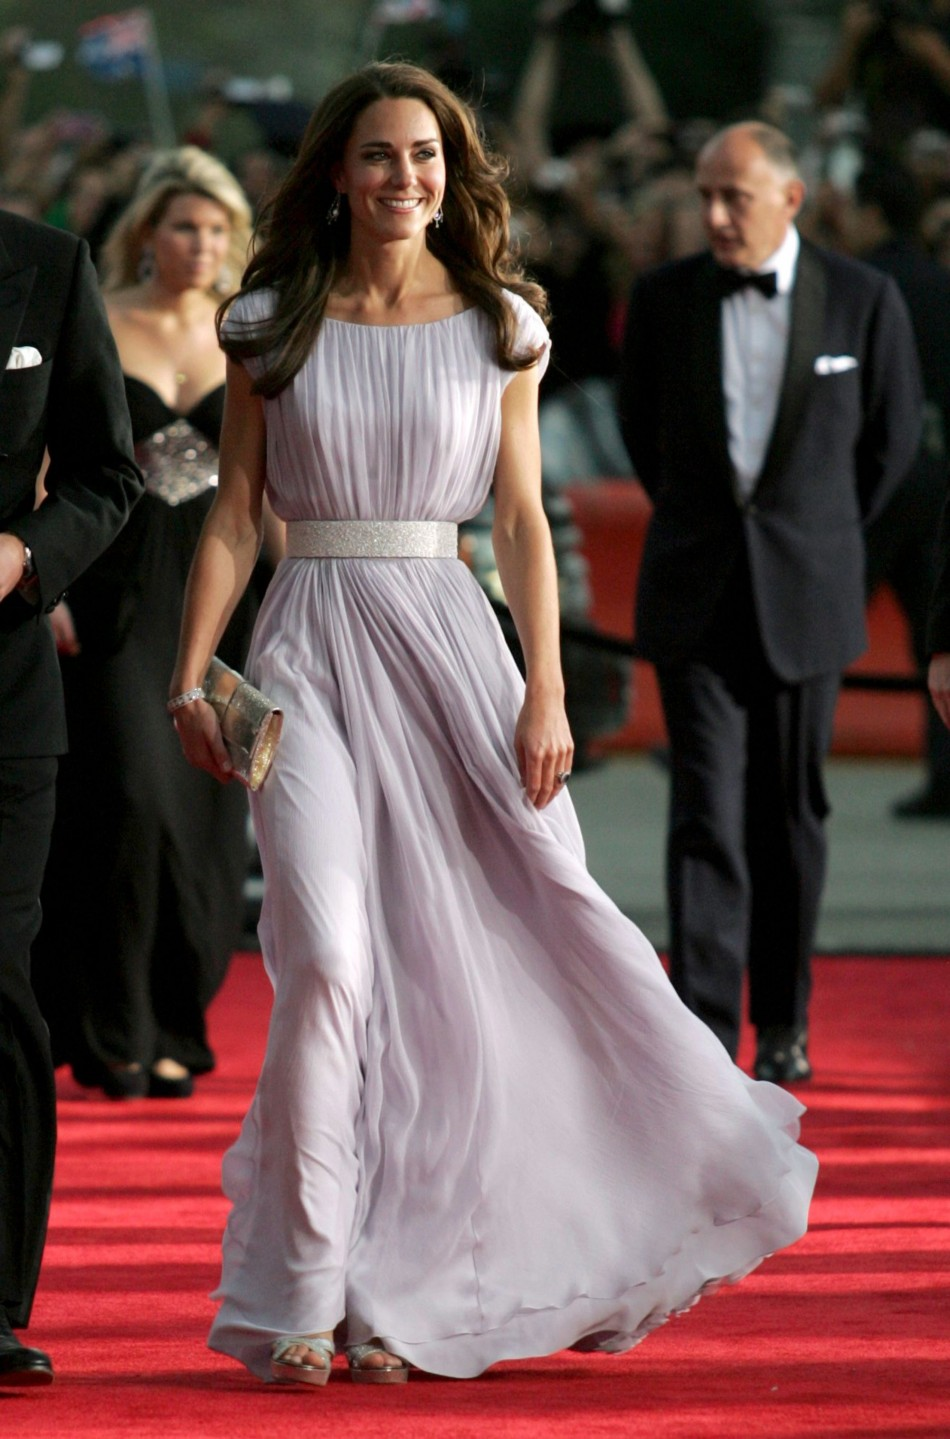 Wearing this Alexander McQueen floor-length gown to the BAFTA Brits event in Los Angeles in July 2011, Kate floored the fashion world in style. The same year, Catherine topped Vanity Fair's best-dressed list for the first time. (Photo: Reuters)